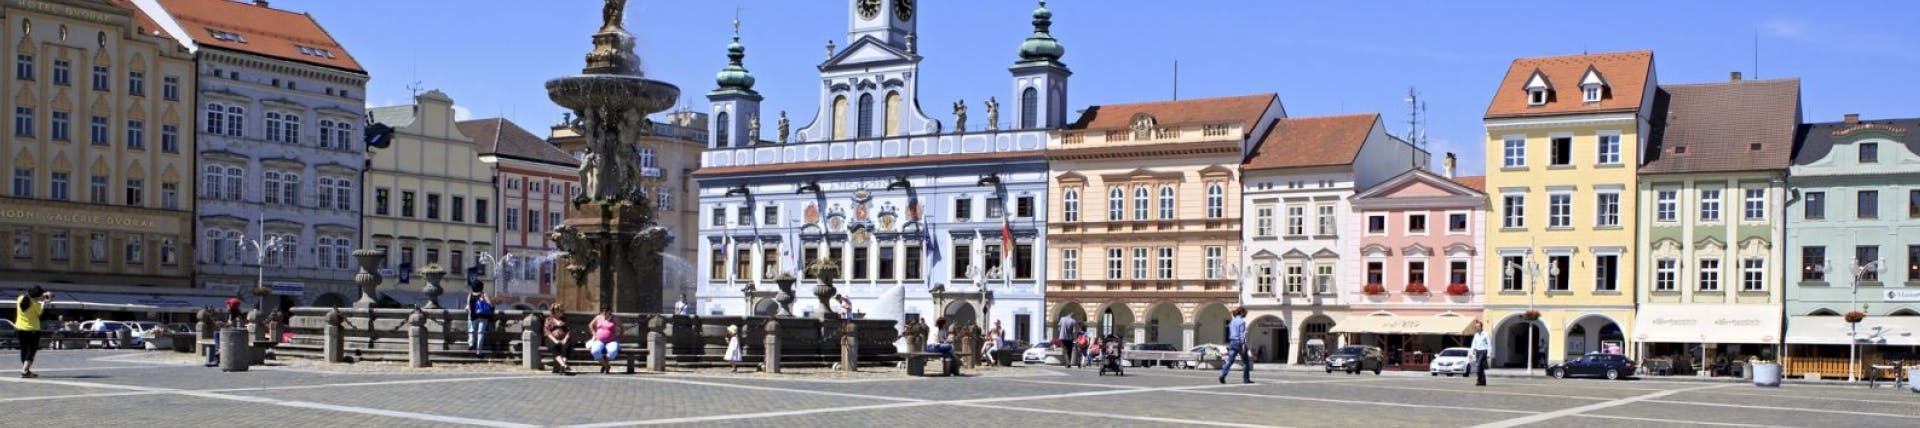 Picture of Czech Budejovice